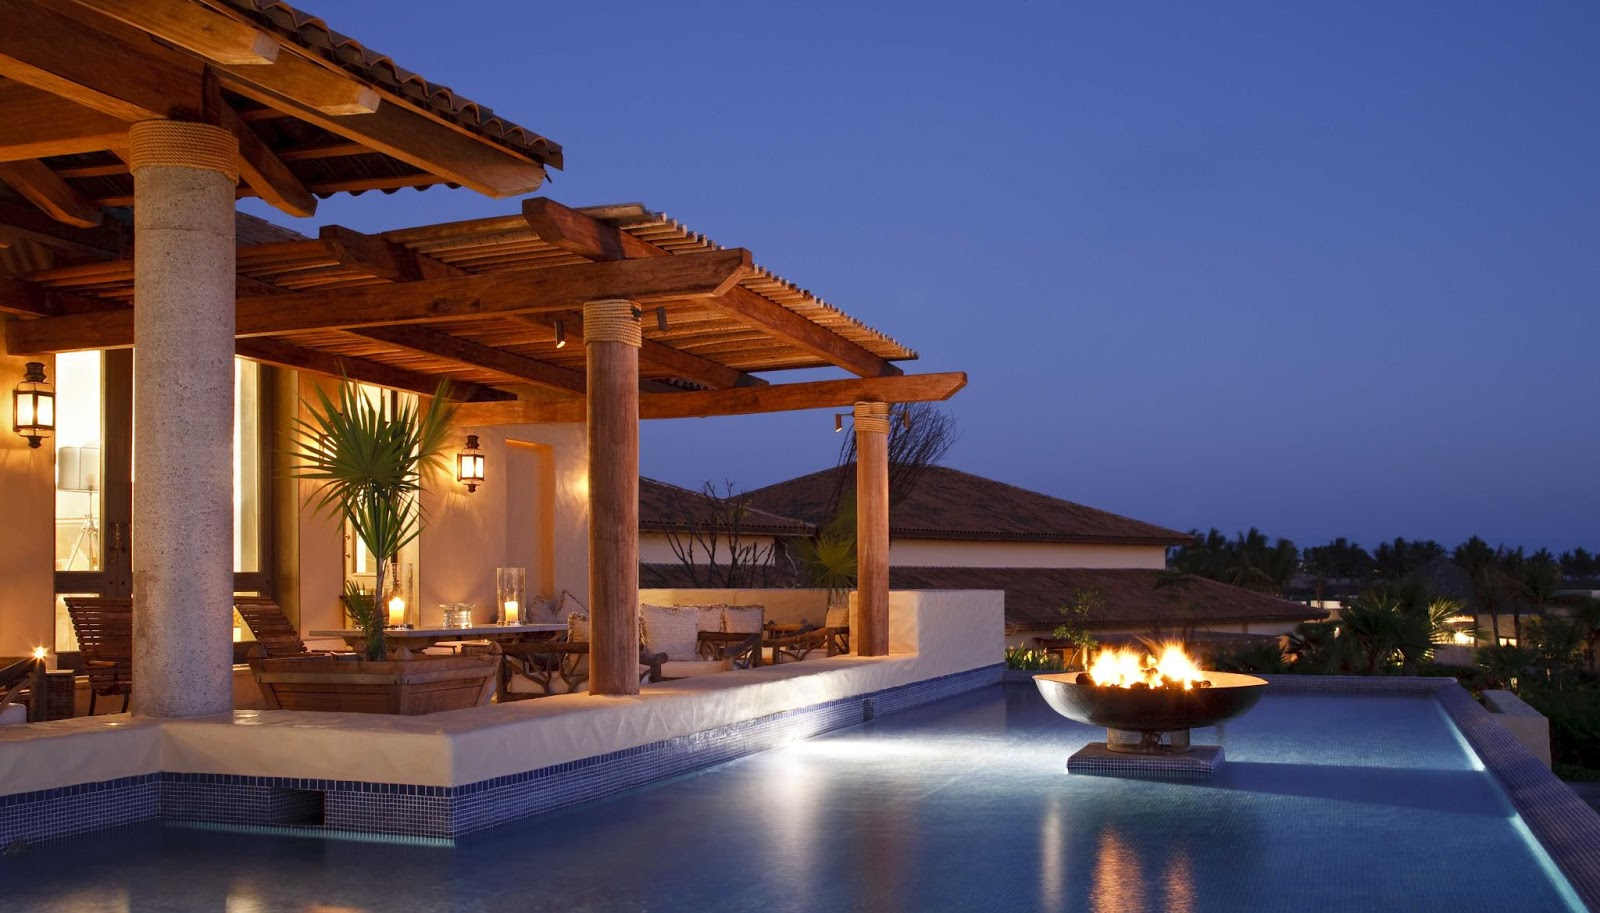 Luxury Life Design The St Regis Punta Mita Resort